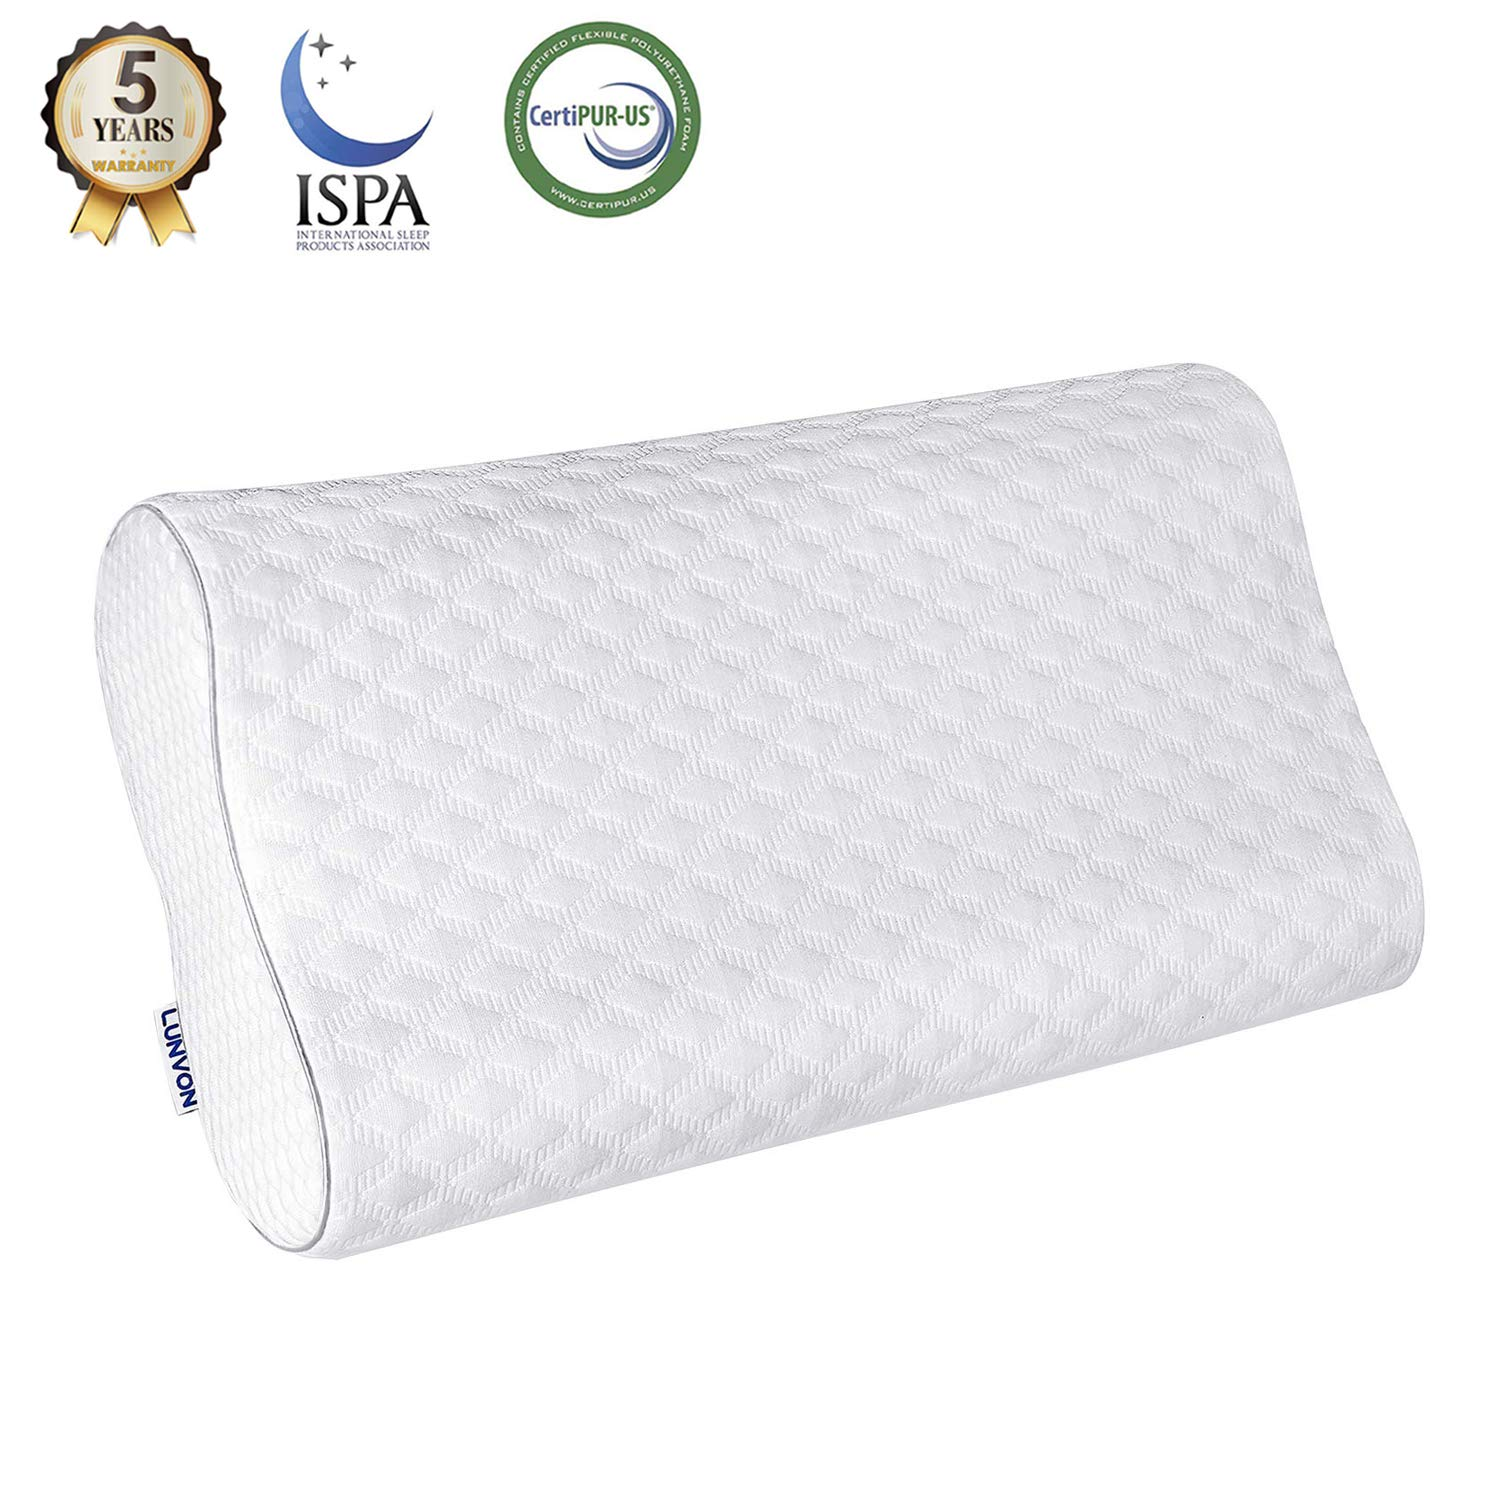 Lunvon Pillows for Sleeping Luxury Queen Memory Foam Cooling Bed Pillows Height Adjustable Cervical Pillow with Pain Relief Design Breathable Hypoallergenic Cotton Cover Protector CertiPUR-US, White